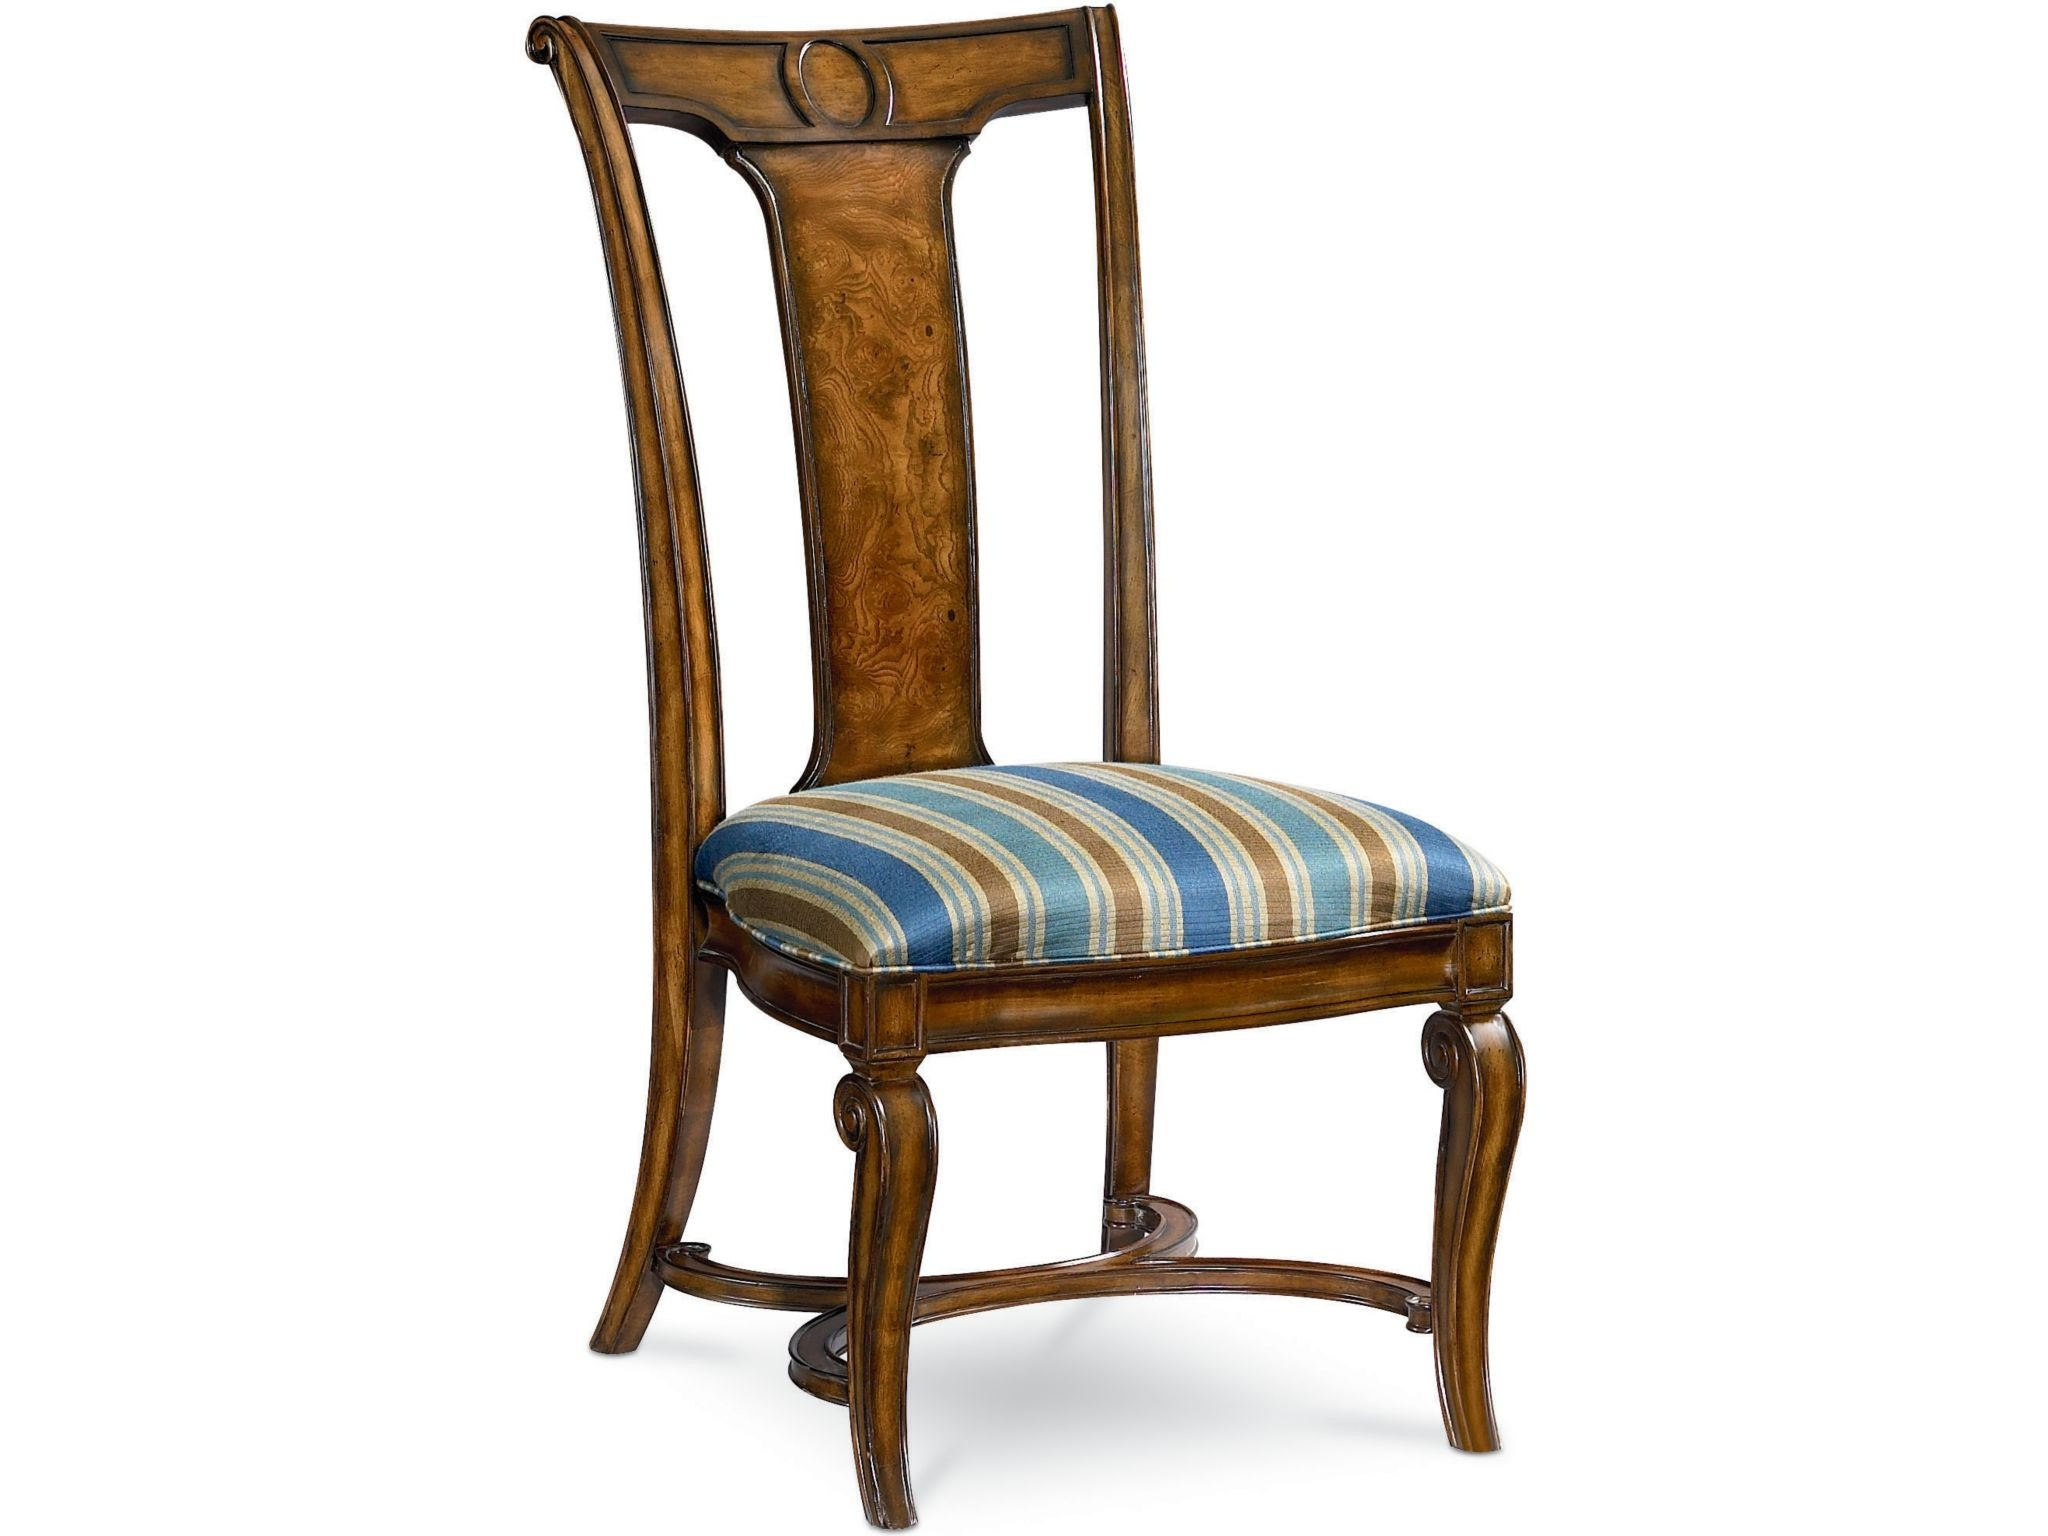 thomasville dining room side chair 46721 831 burke thomasville dining room arm chair 82621 822 klingman s